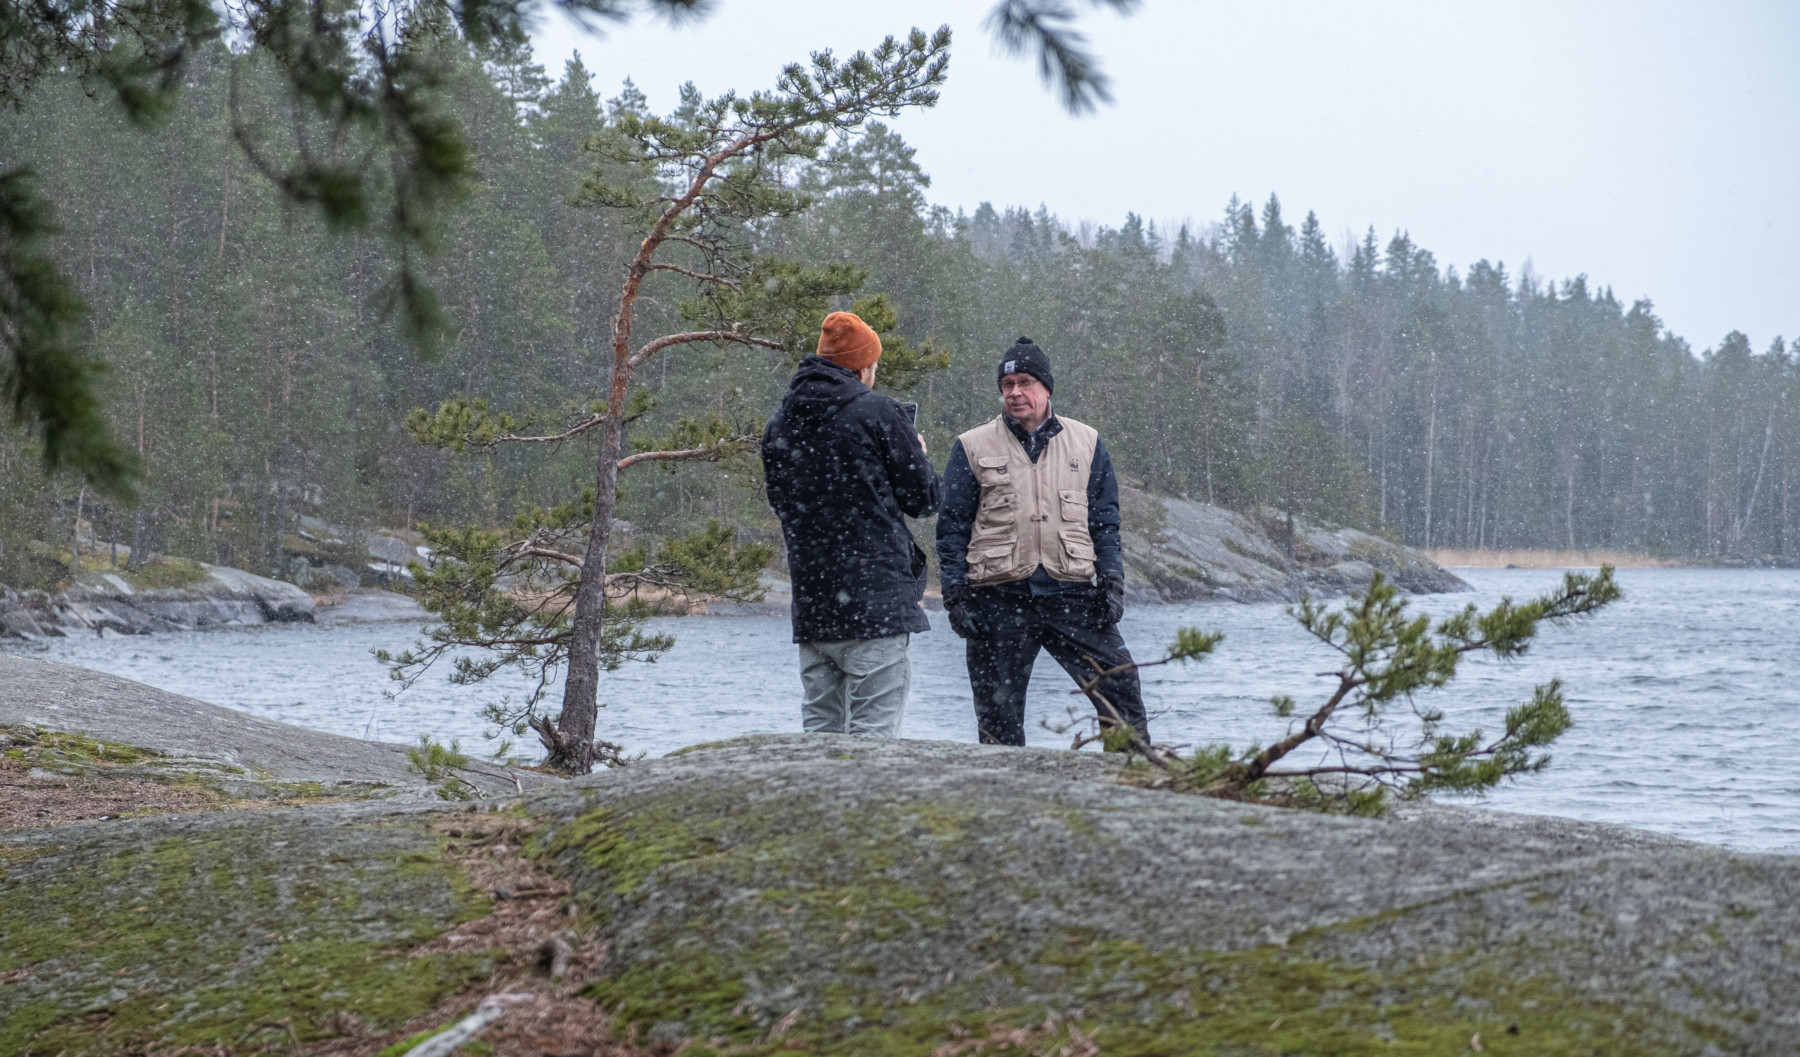 Undeterred by a February sleet storm, WWF Finland communications specialist Joonas Fritze (left) and volunteer Ismo Marttinen contemplate a green lakeshore landscape that is usually covered in a thick layer of white snow during winter.